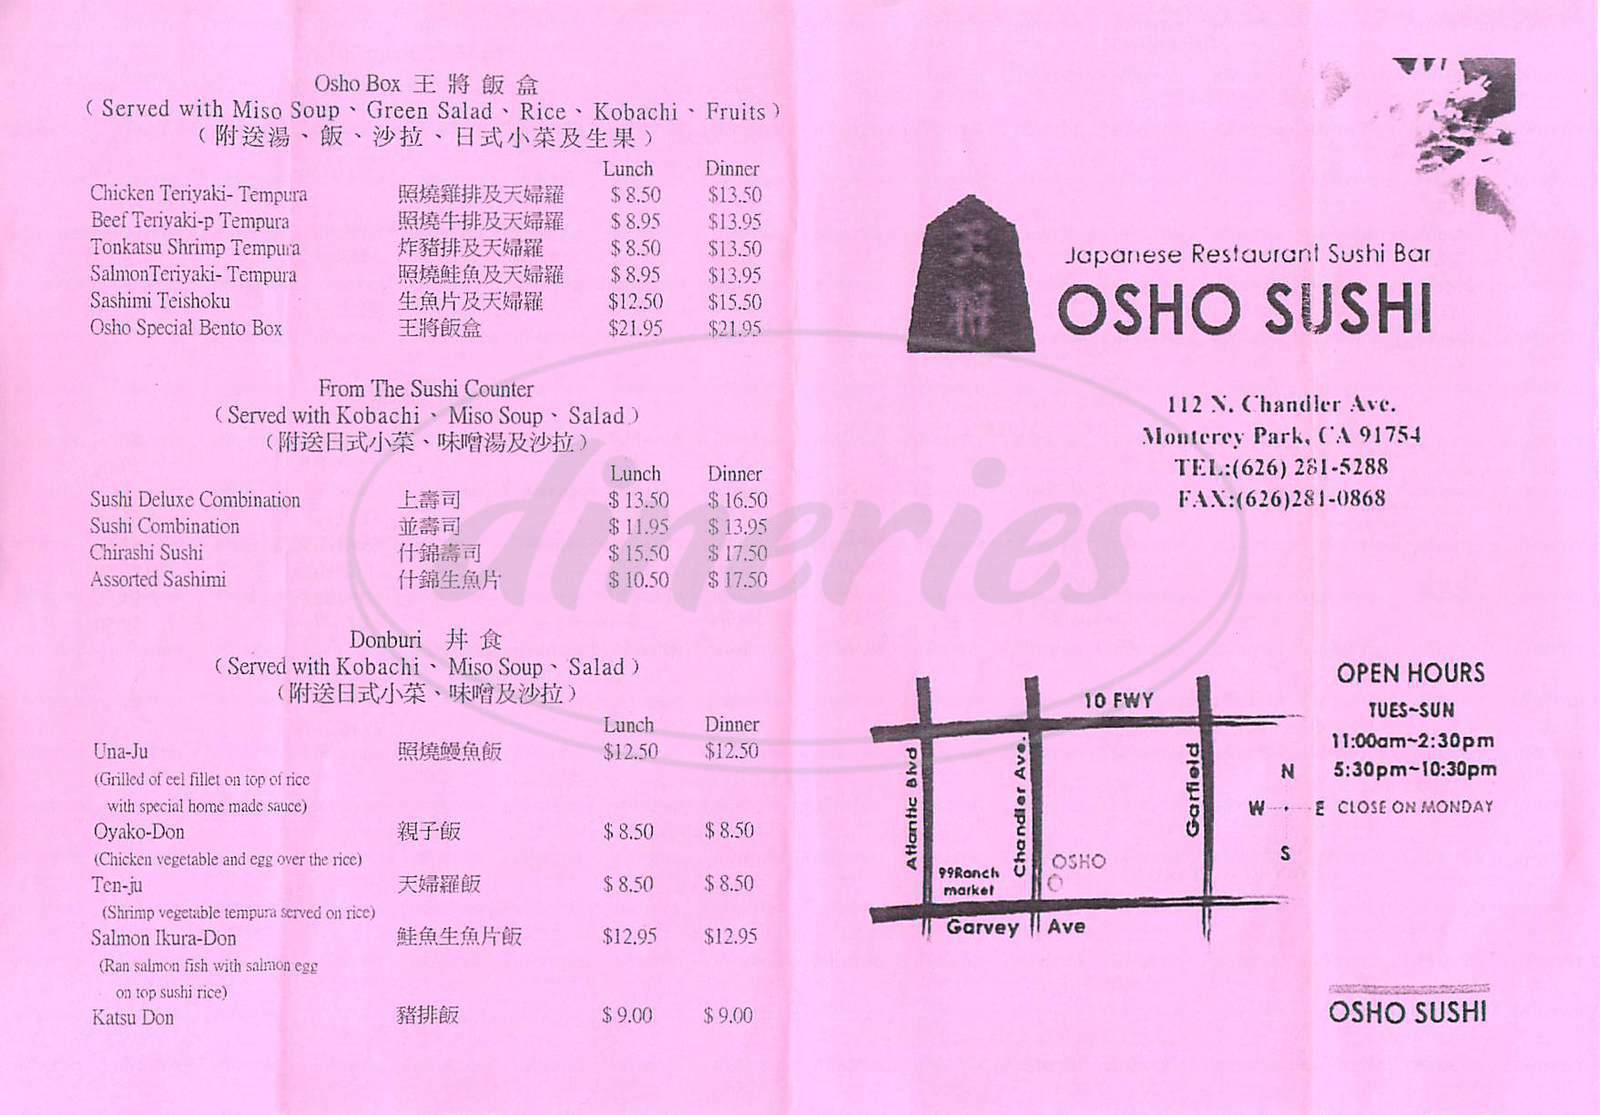 menu for Osho Sushi